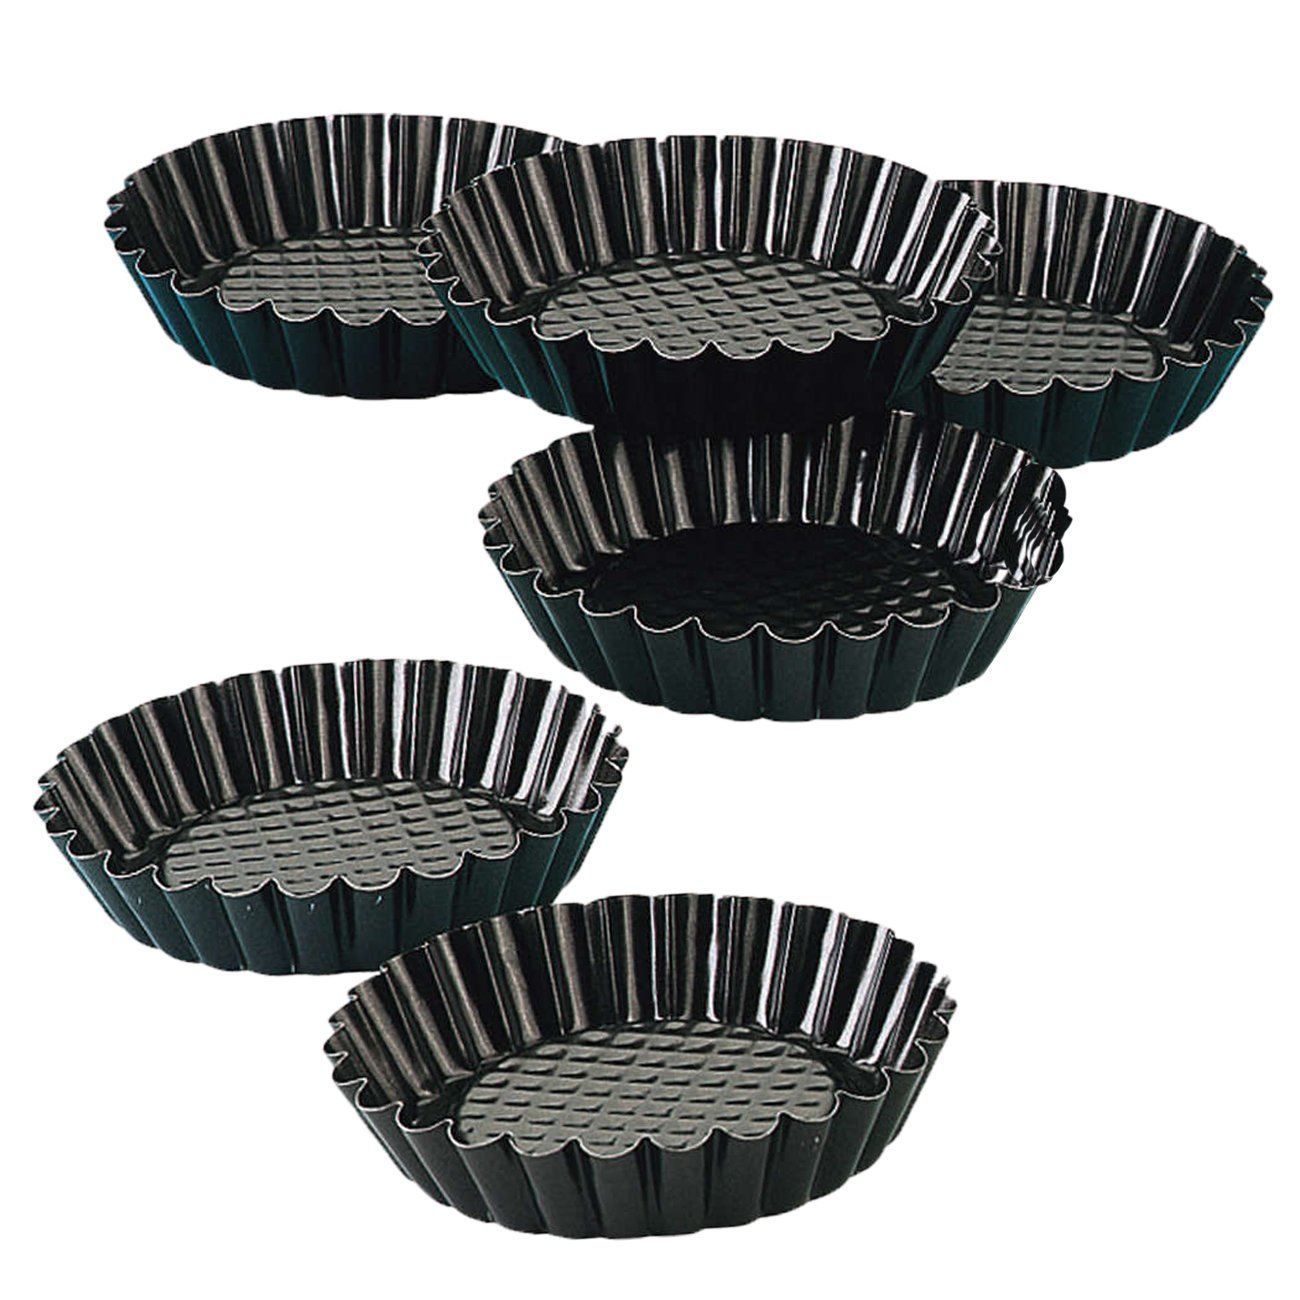 Zenker Non-Stick Mini Tart Pans, 4-Inch, Set of 6